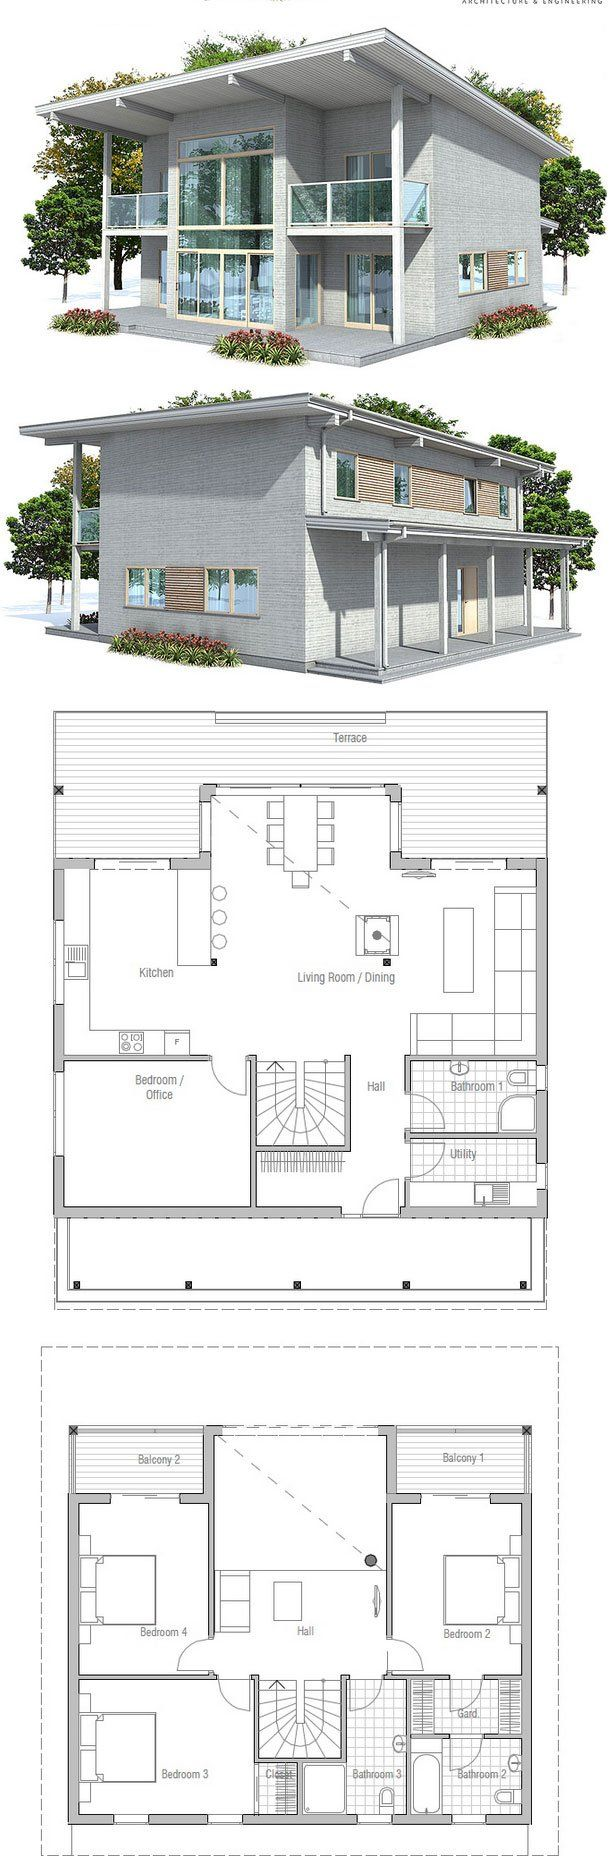 best 25 small open floor house plans ideas on pinterest small best 25 small open floor house plans ideas on pinterest small home plans small cottage plans and small farmhouse plans